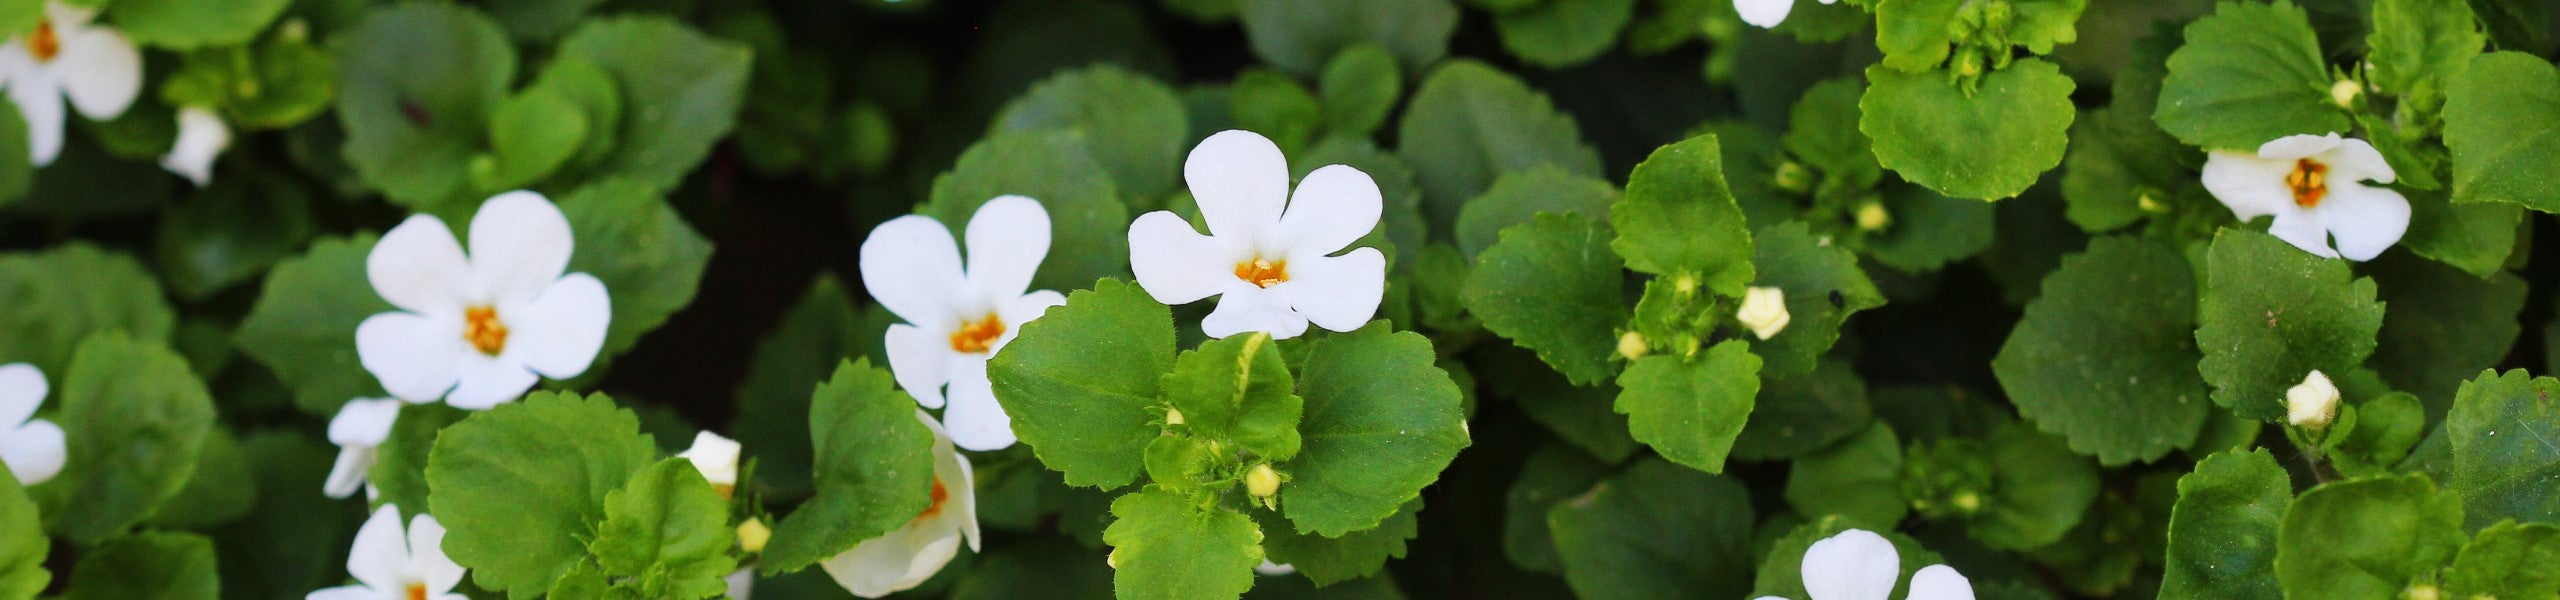 Bacopa monnieri plant and flowers